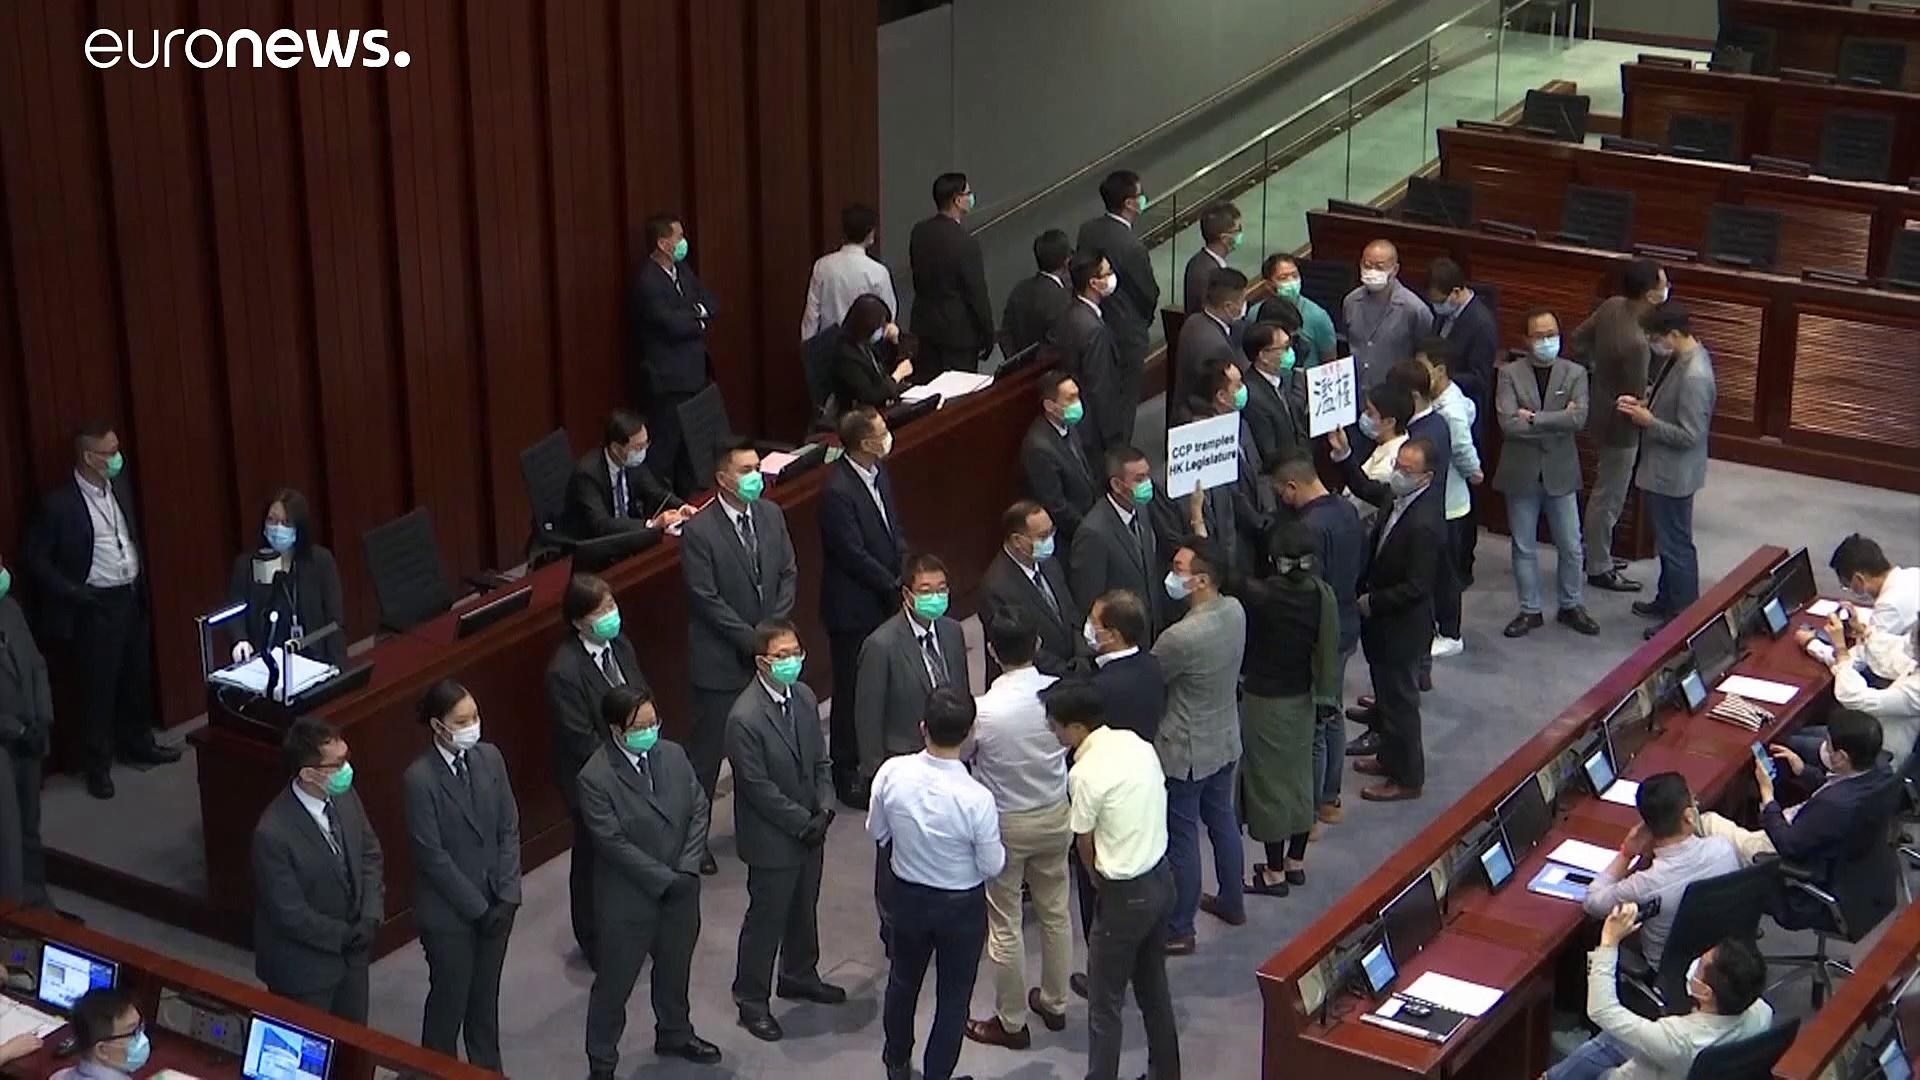 Clashes in Hong Kong's legislature after pro-Beijing lawmaker elected to lead key committee